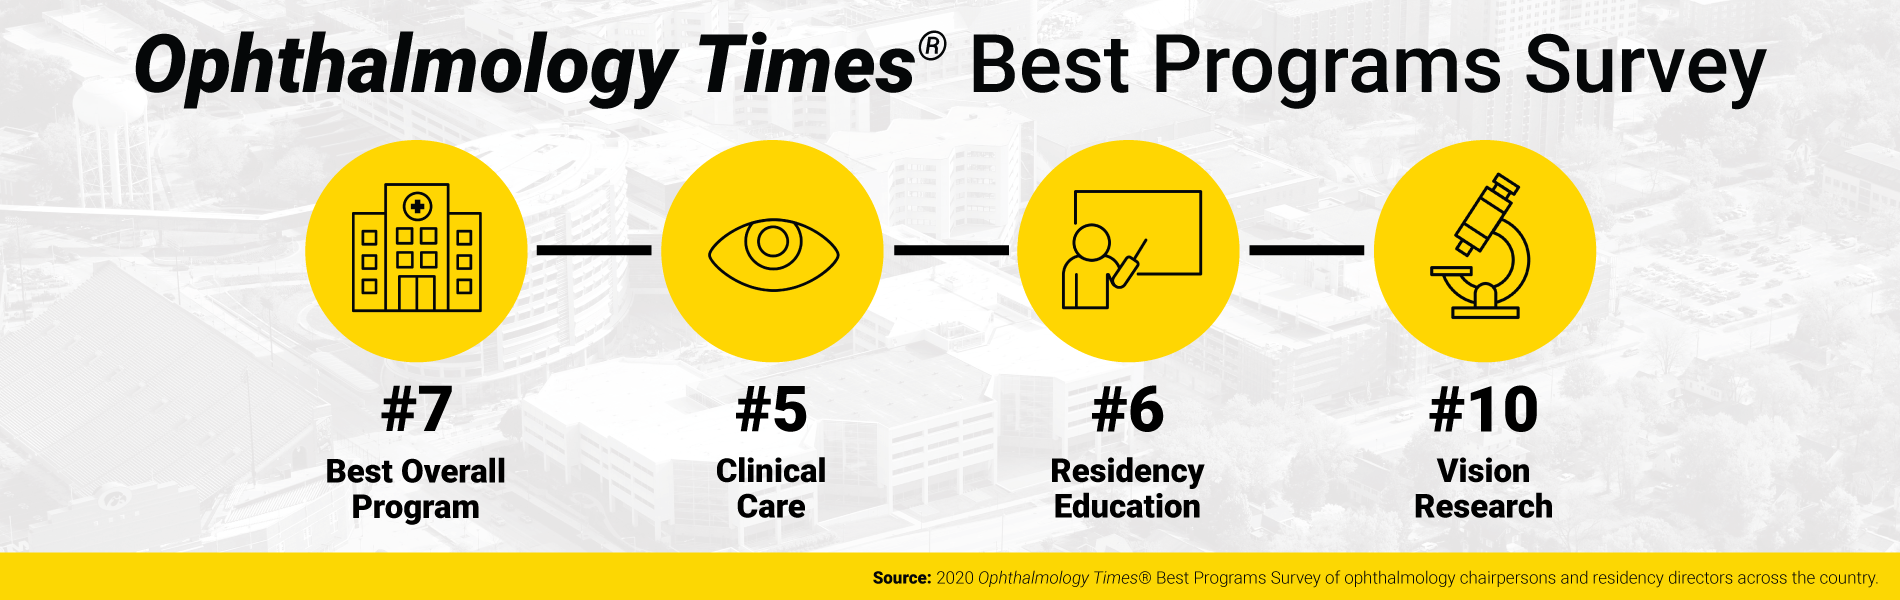 2020 Ophthalmology Times Best Programs Survey